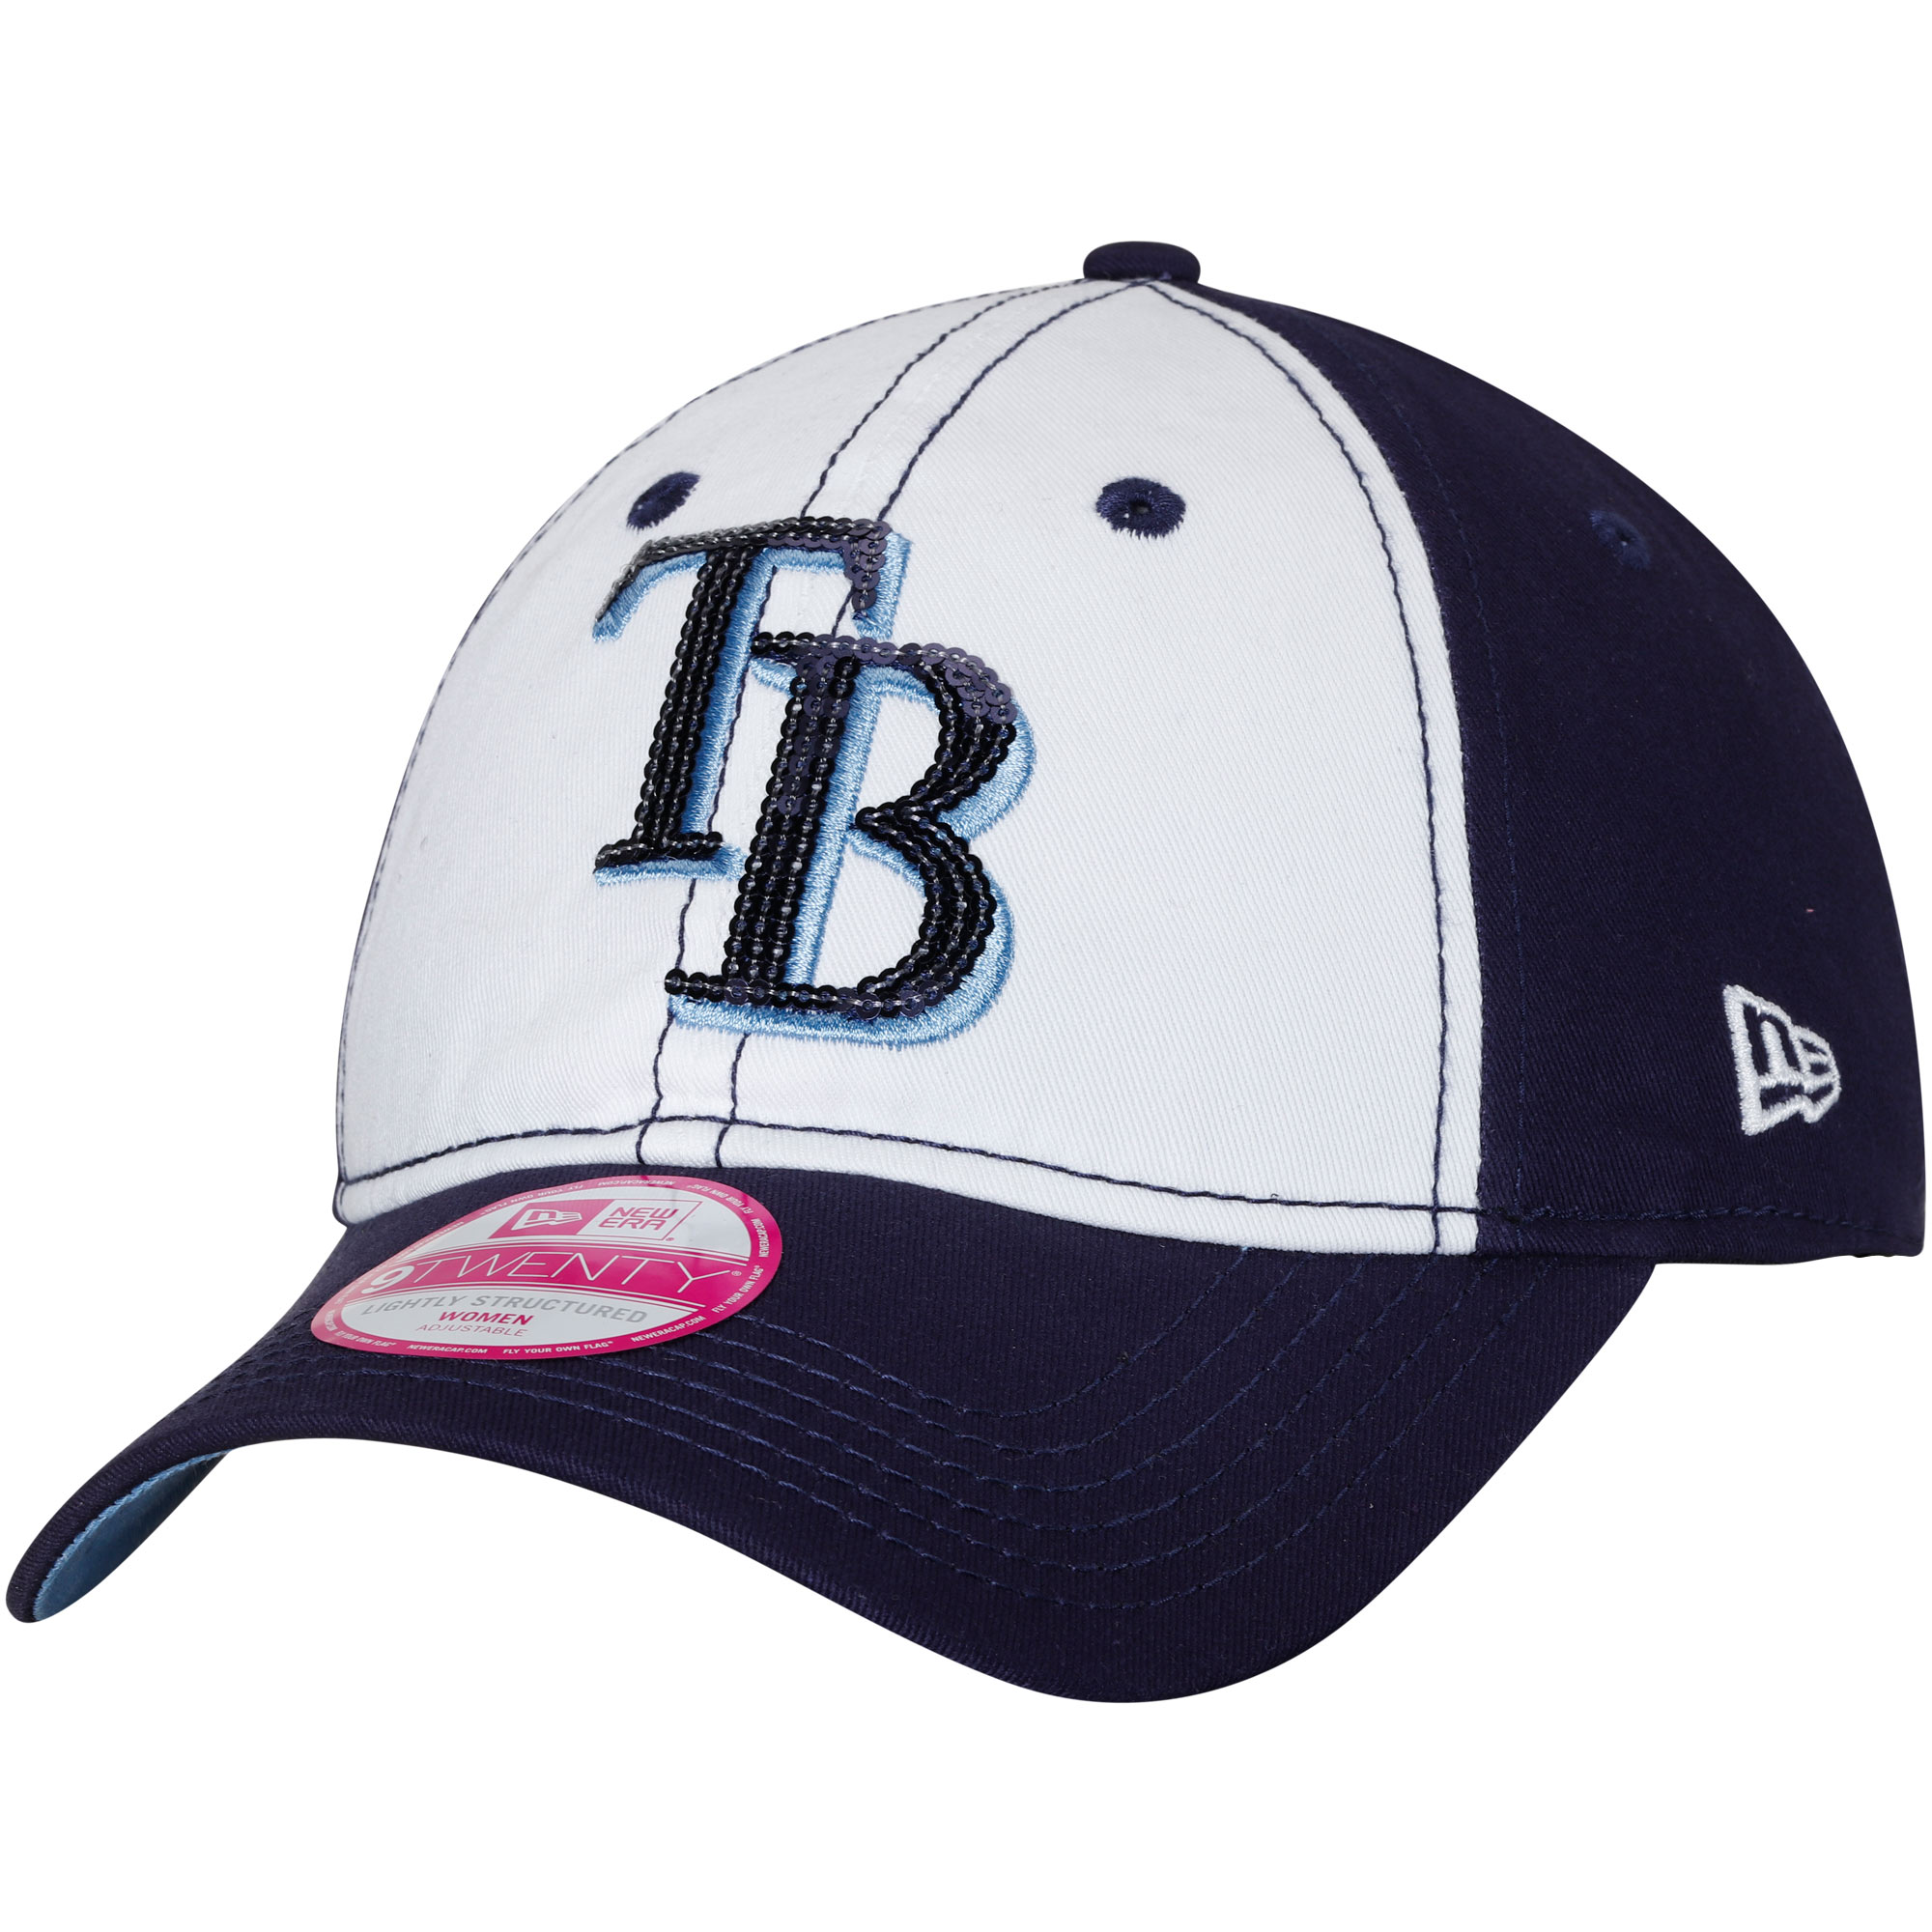 Tampa Bay Rays New Era Women's Team Glimmer 9TWENTY Adjustable Hat - White/Navy - OSFA